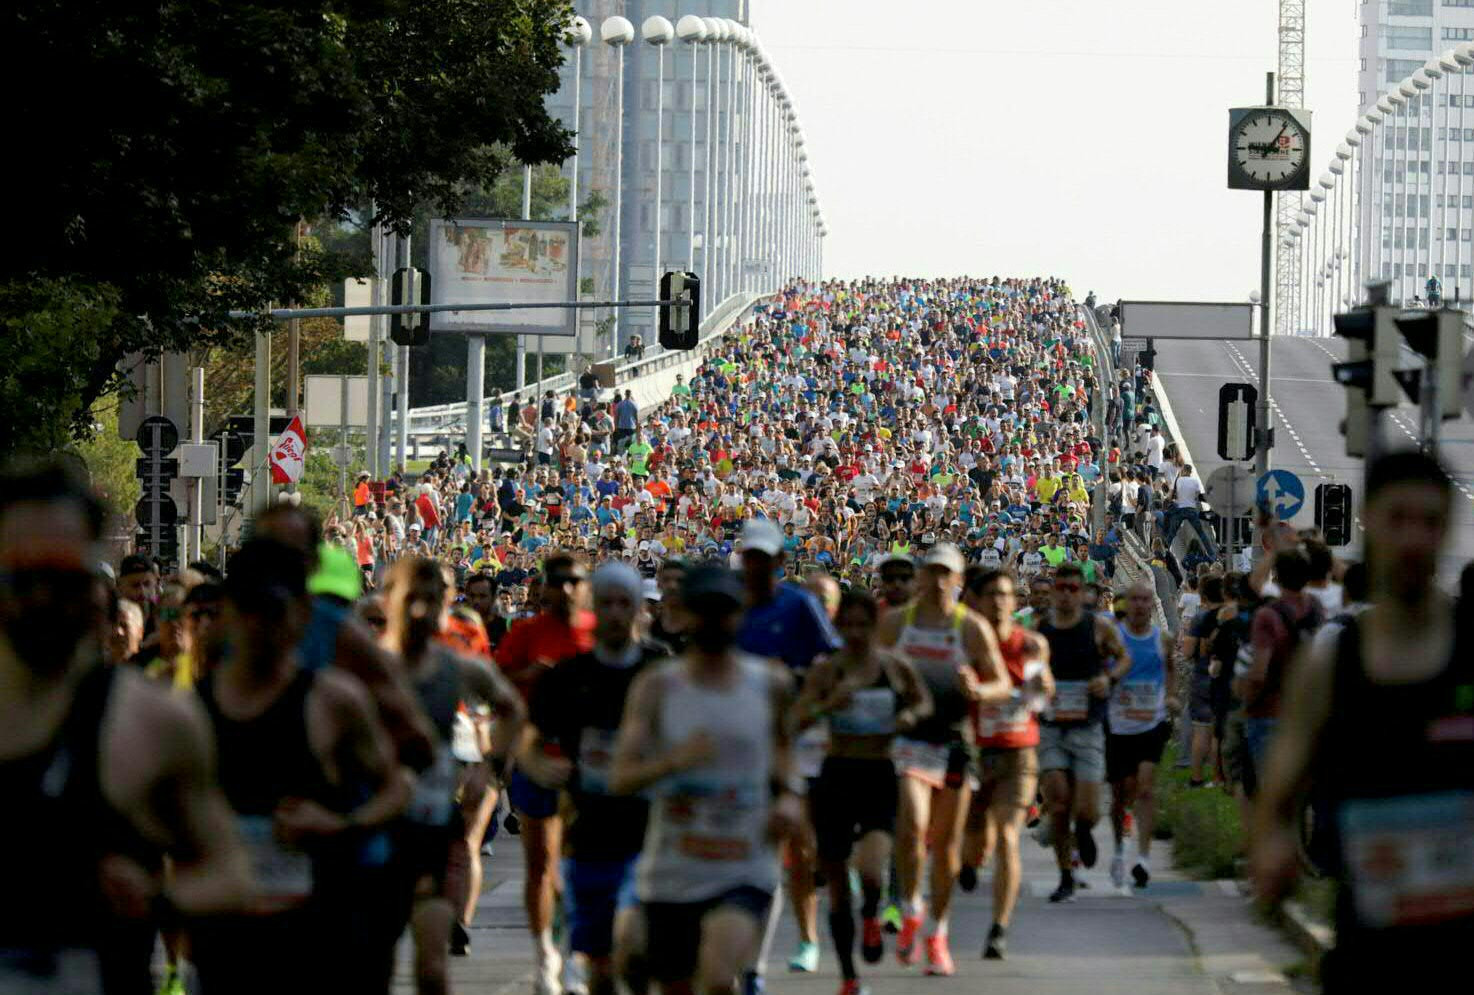 Vienna City Marathon reports no COVID-19 cases related to the race